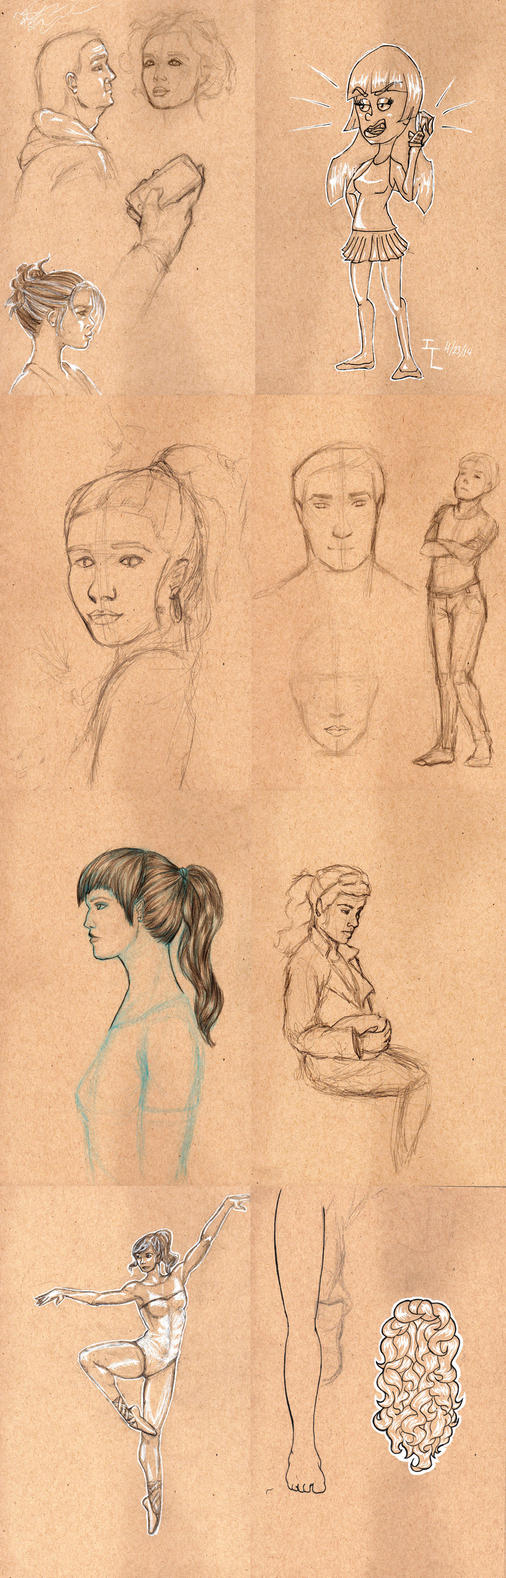 Sketch Dump 3 by GosterMonster